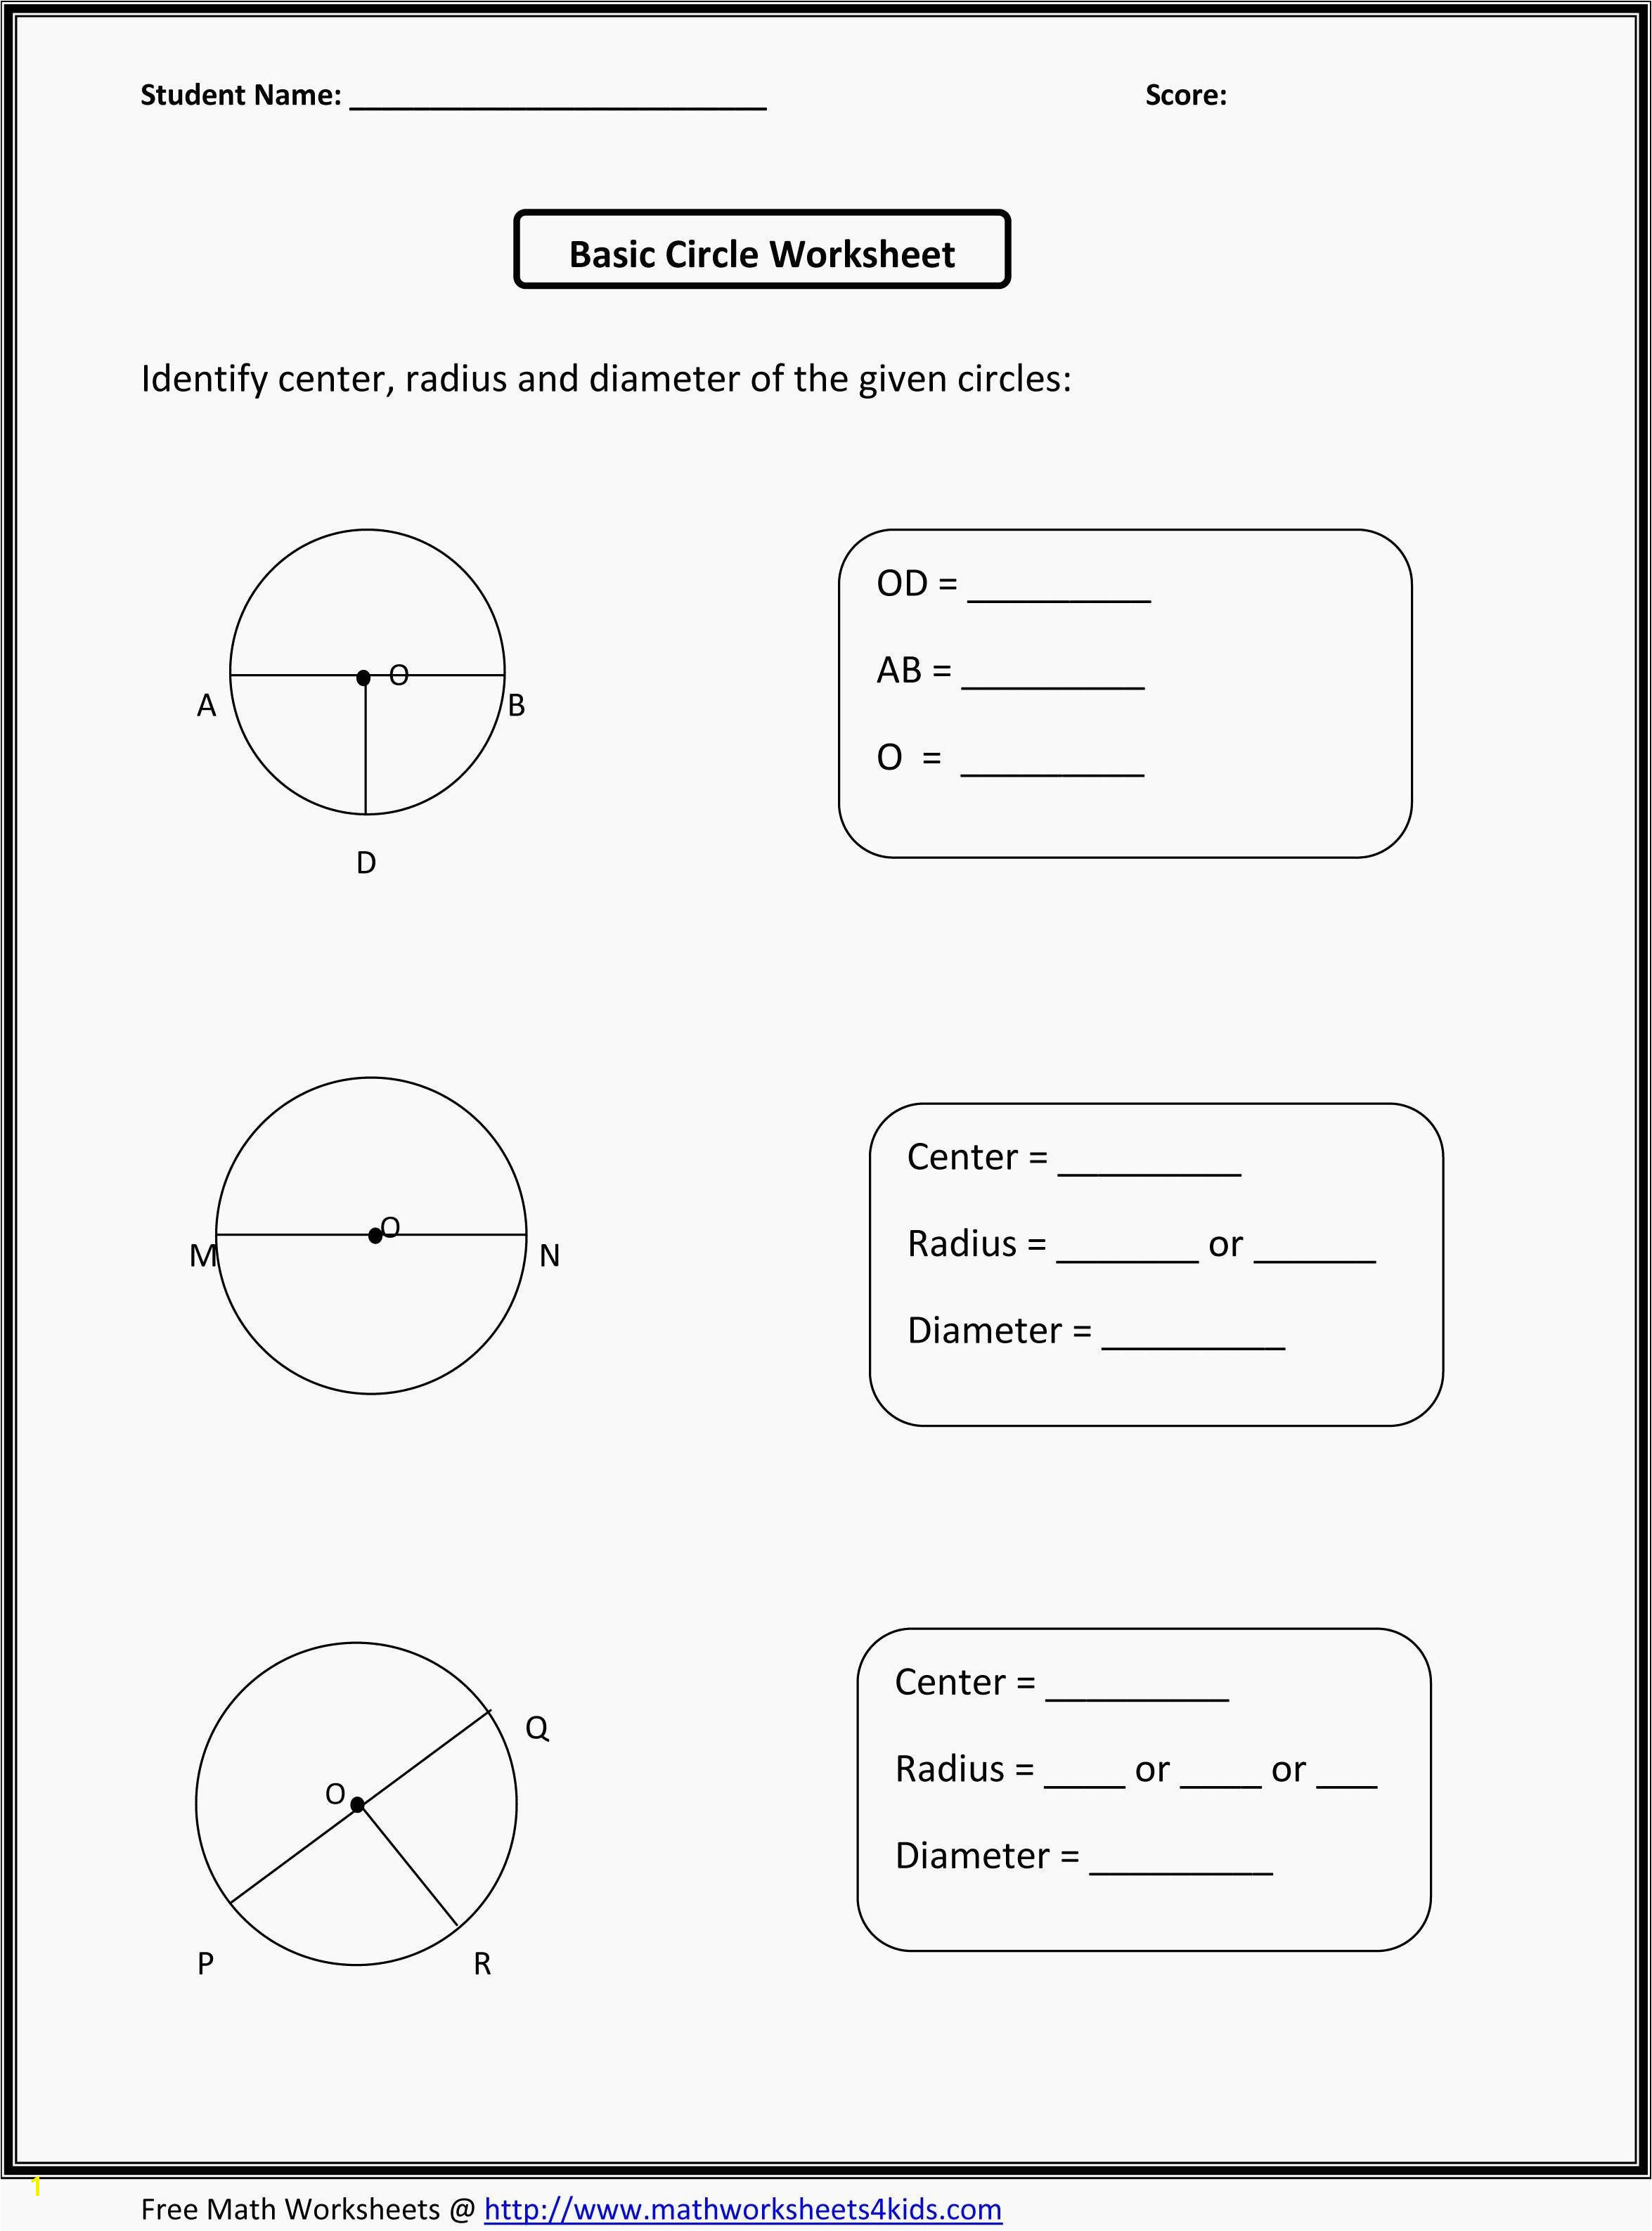 Division Facts Coloring Page Thanksgiving Coloring Pages Math Got Second Grade Inspirational